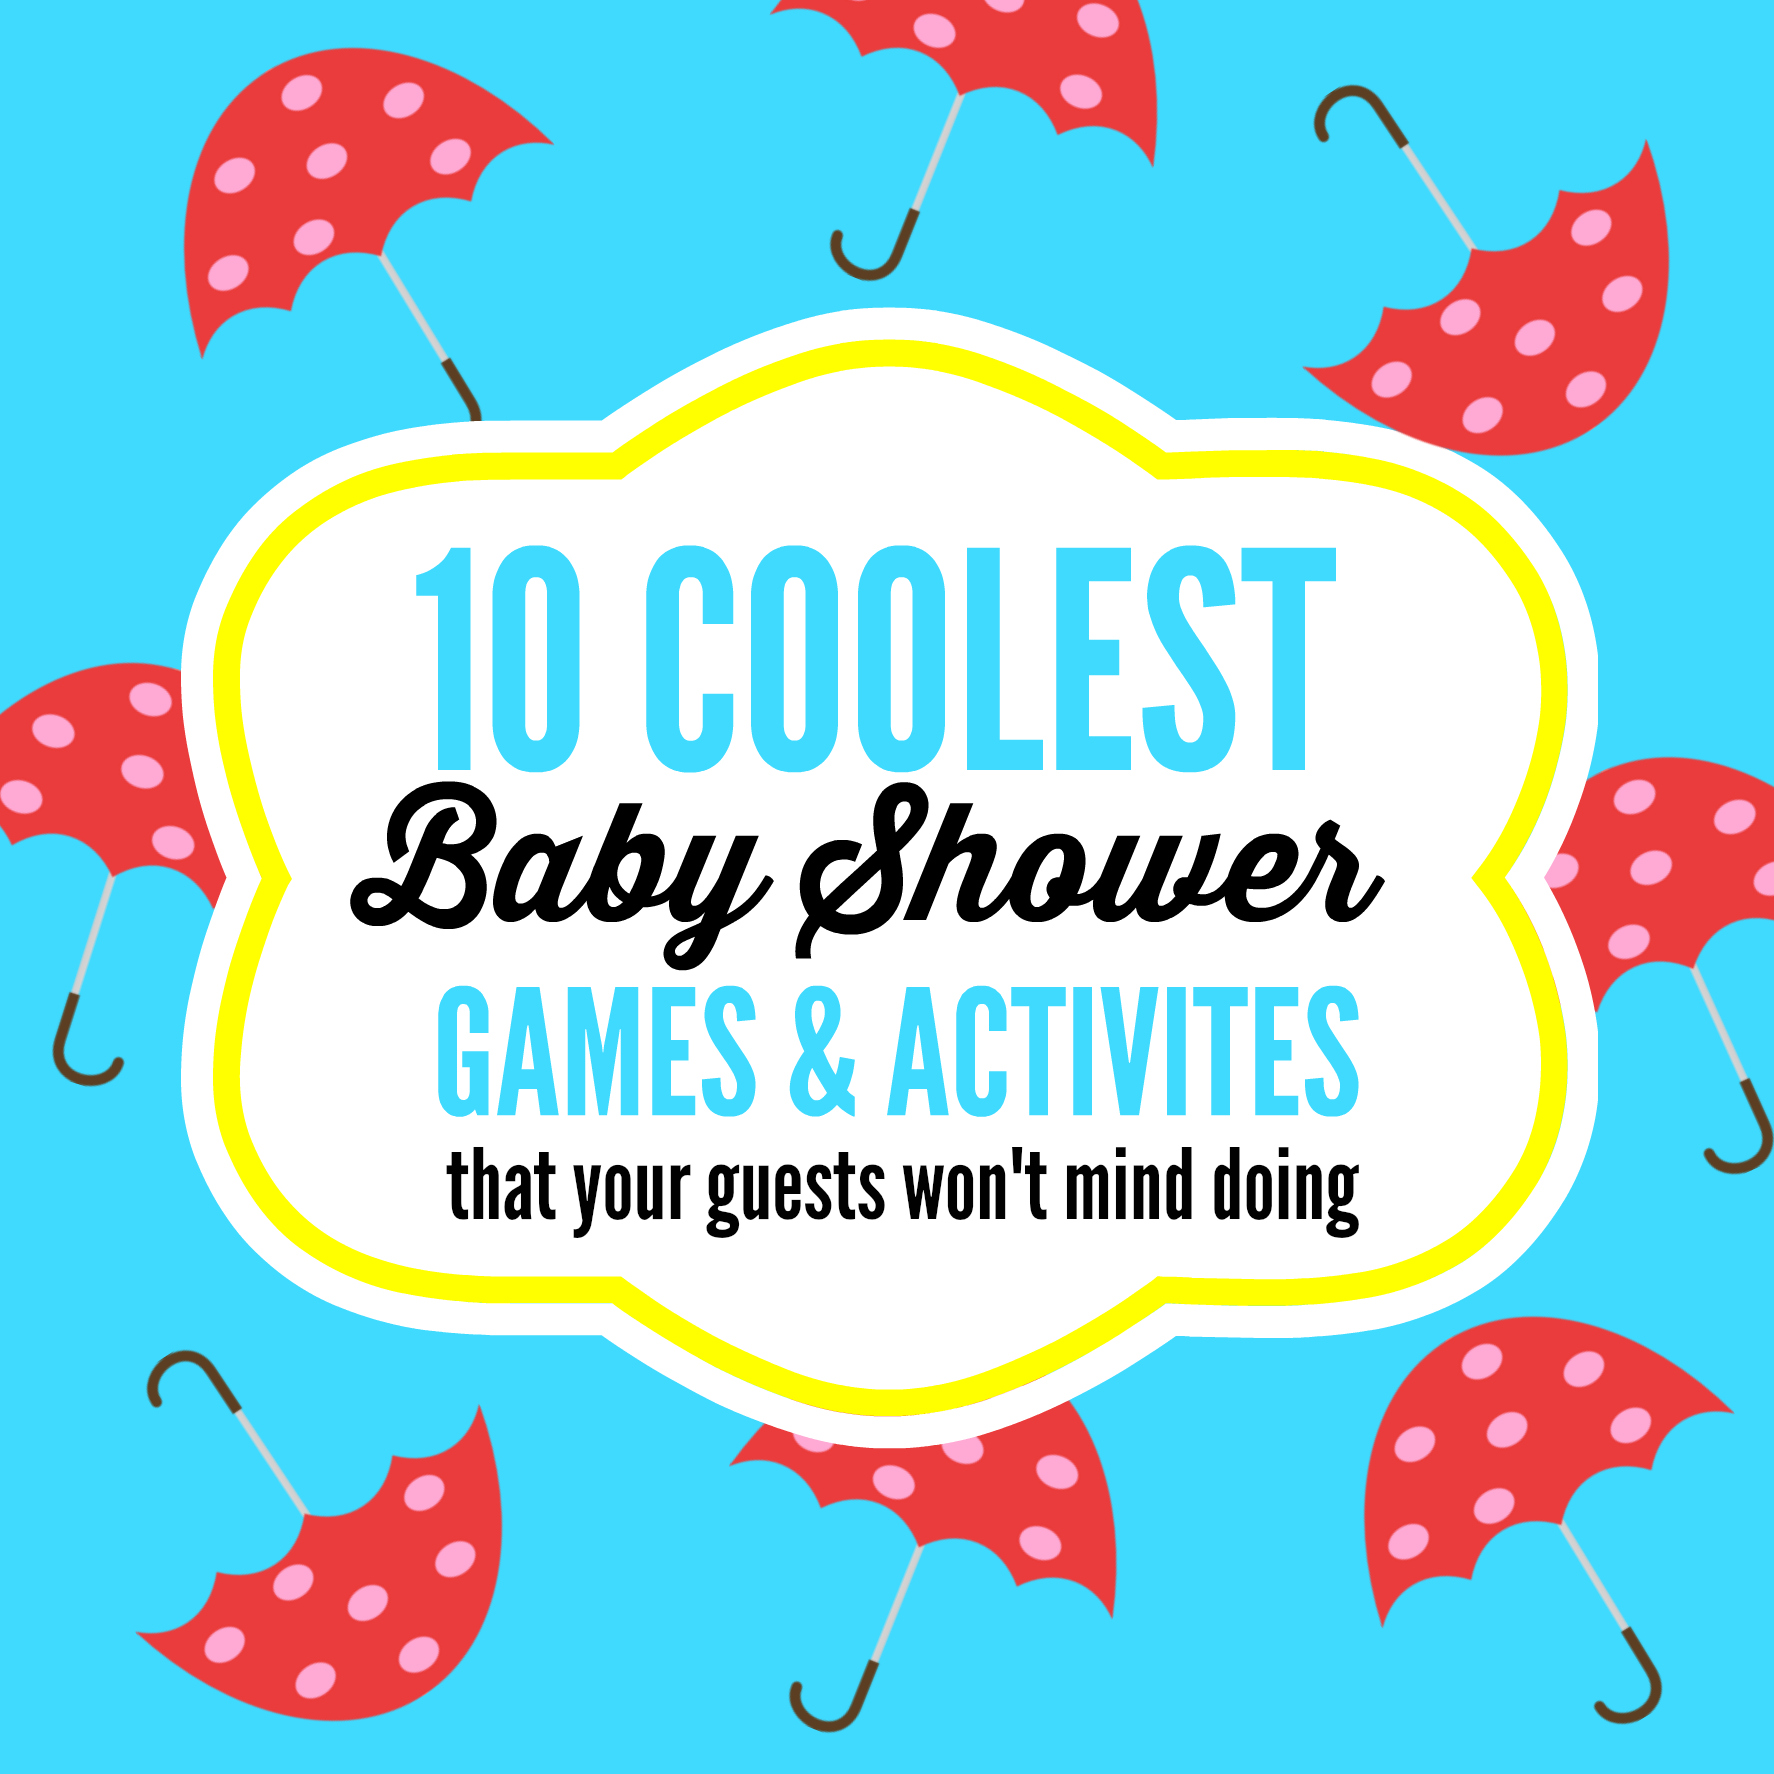 picture relating to Late Night Diapers Free Printable named Late Evening Diapers Little one Shower Activity